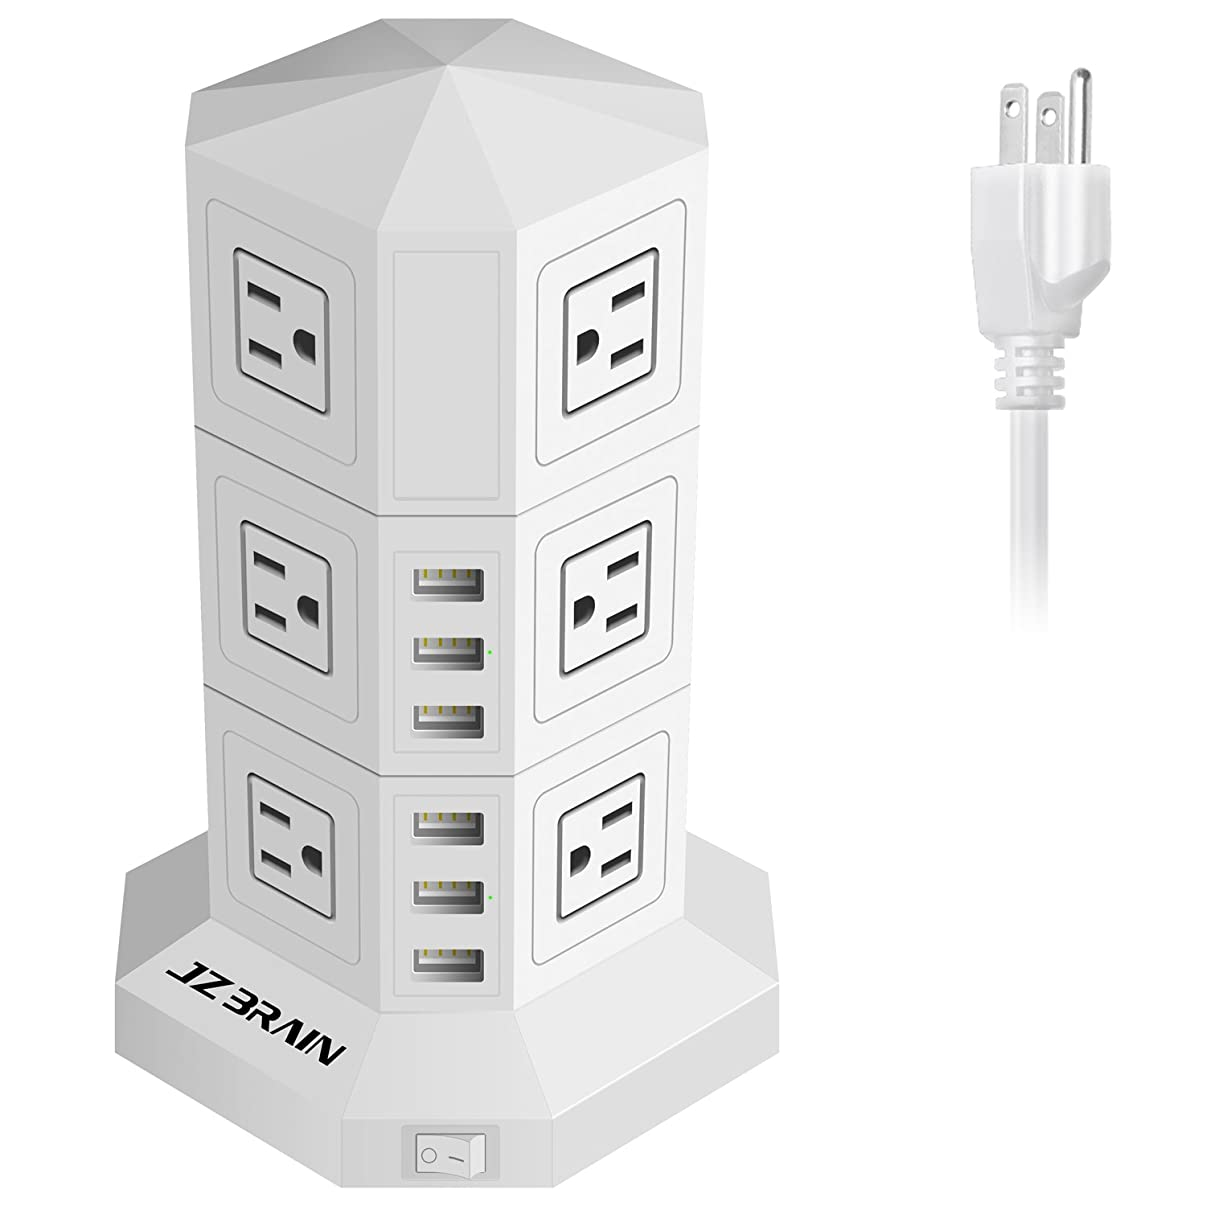 JZBRAIN Tower Surge Protector Charging Station 12-Outlet 6-USB with 9.8ft Extension Cord (White)